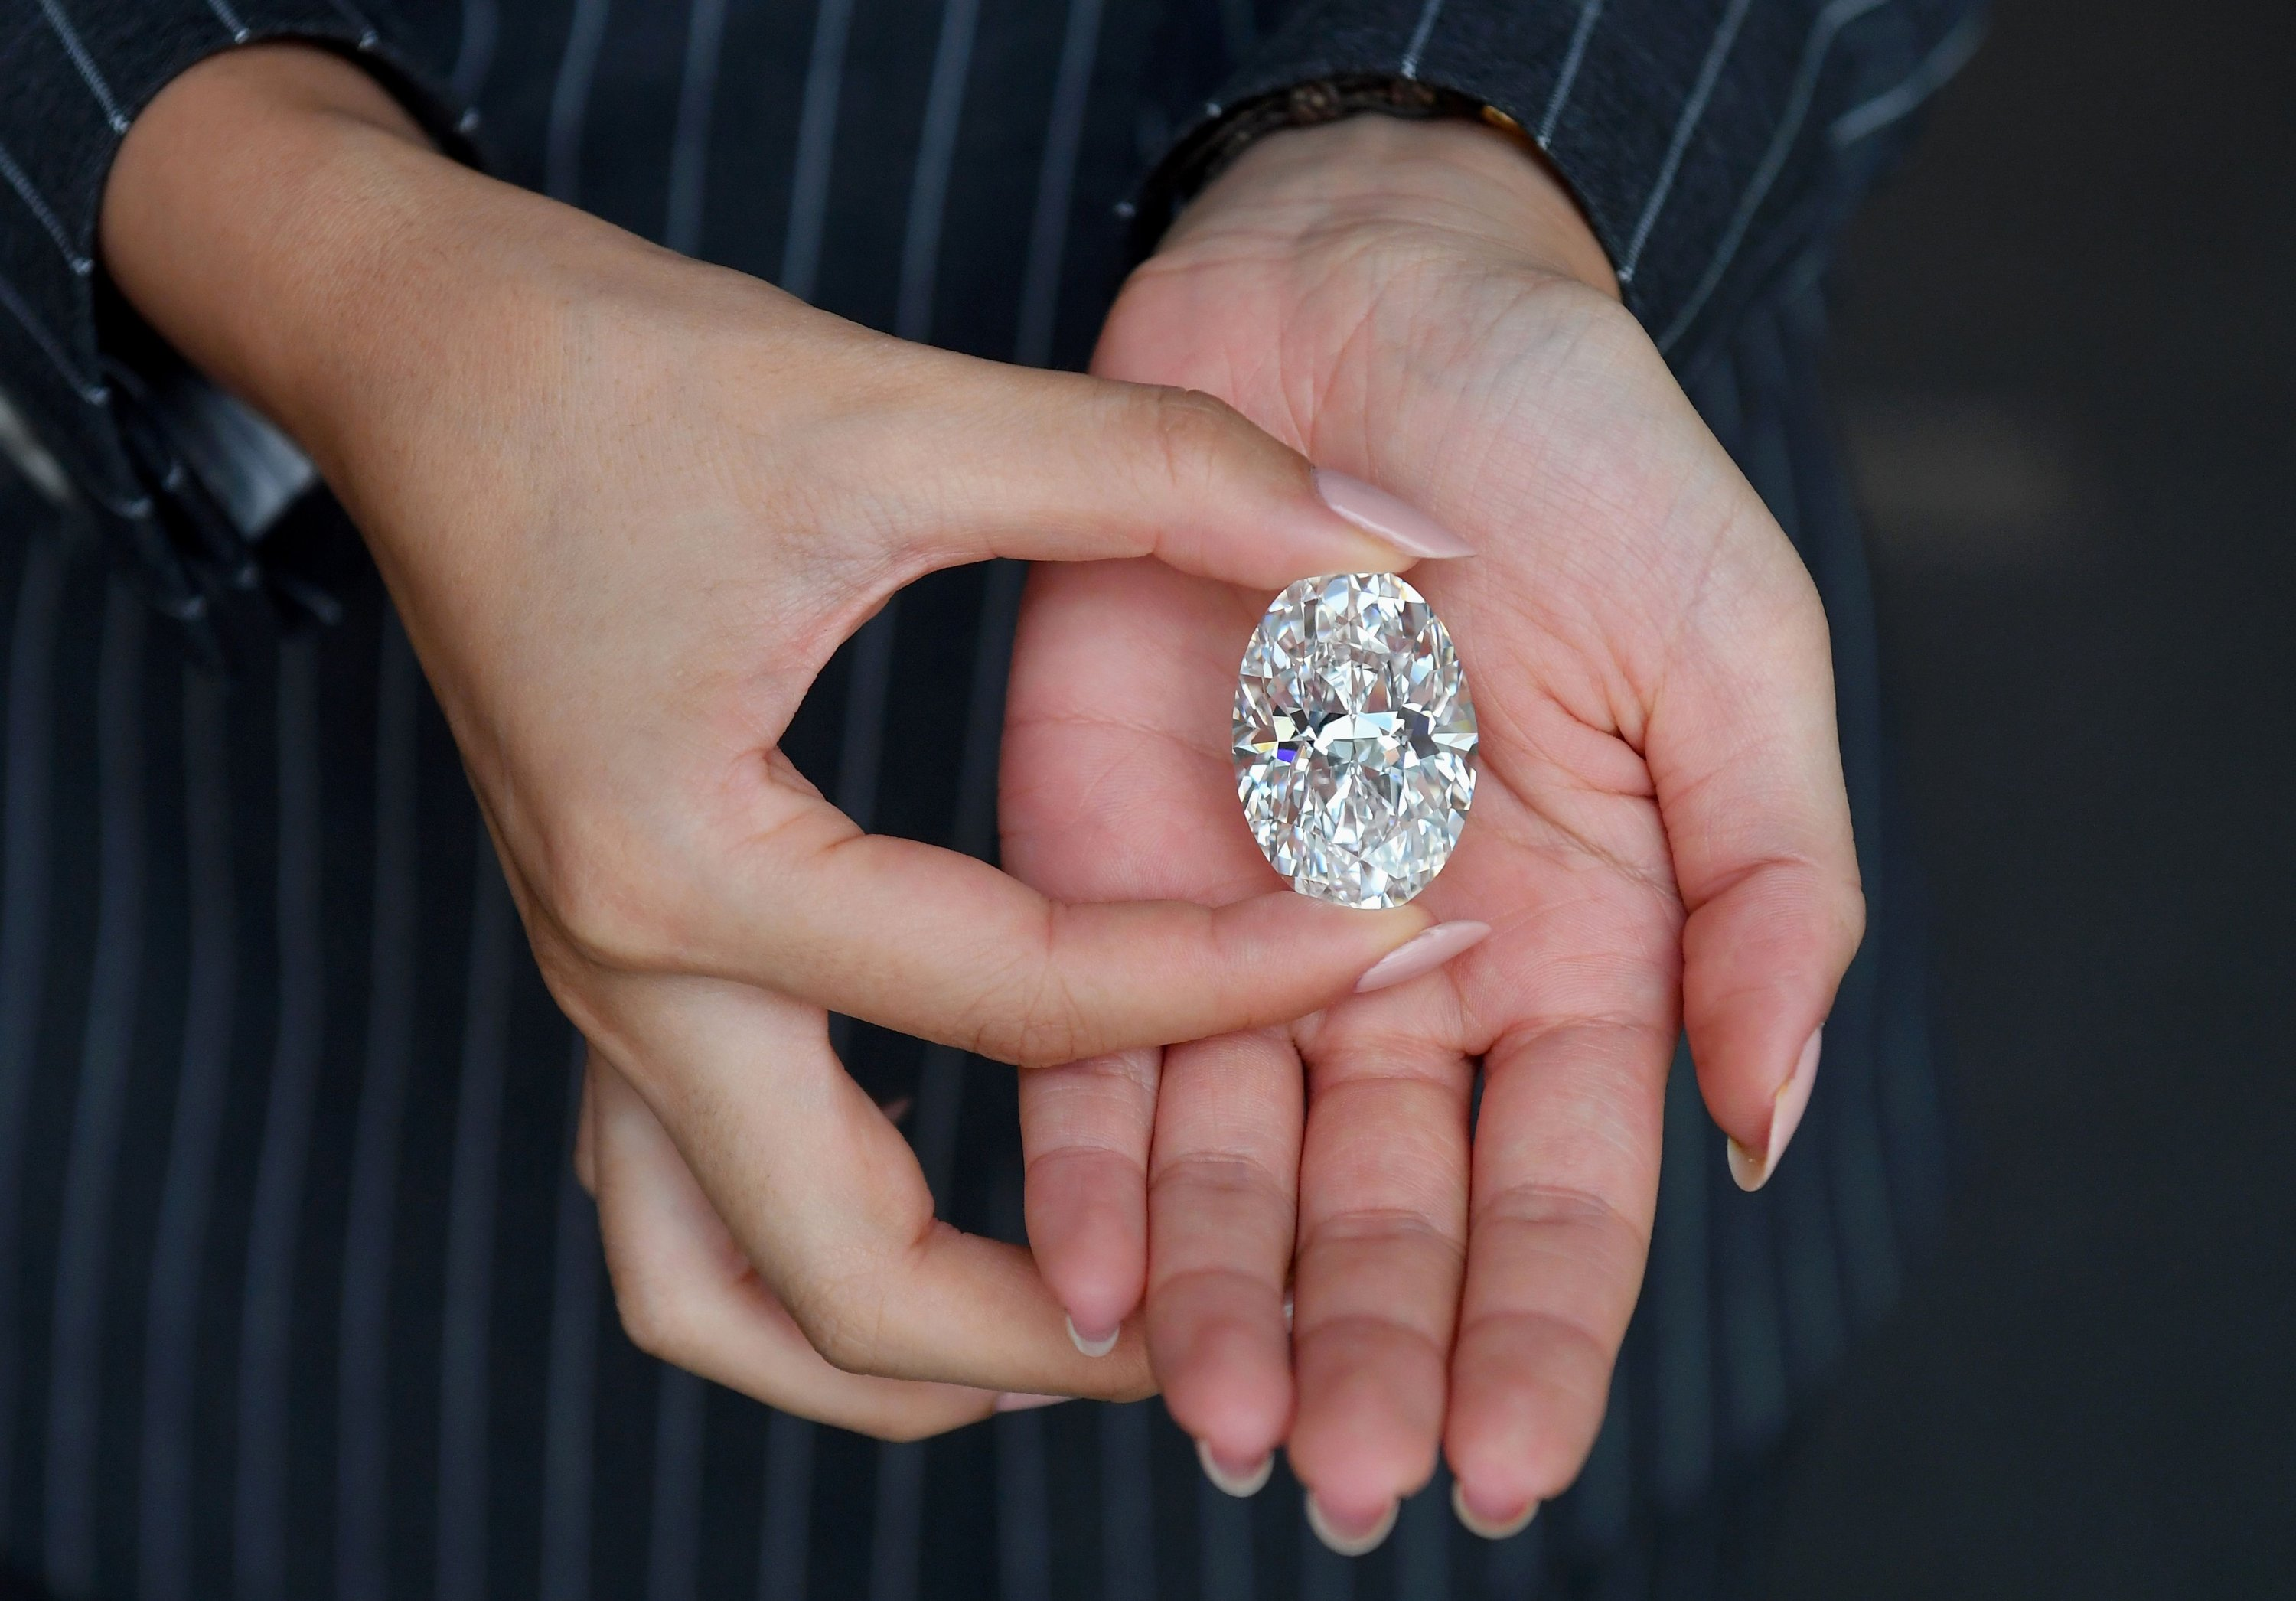 A Sotheby's employee holds a 102.39-carat flawless oval diamond during a media preview at Sotheby's, New York City, New York, U.S., Sept. 9, 2020. (AFP Photo)